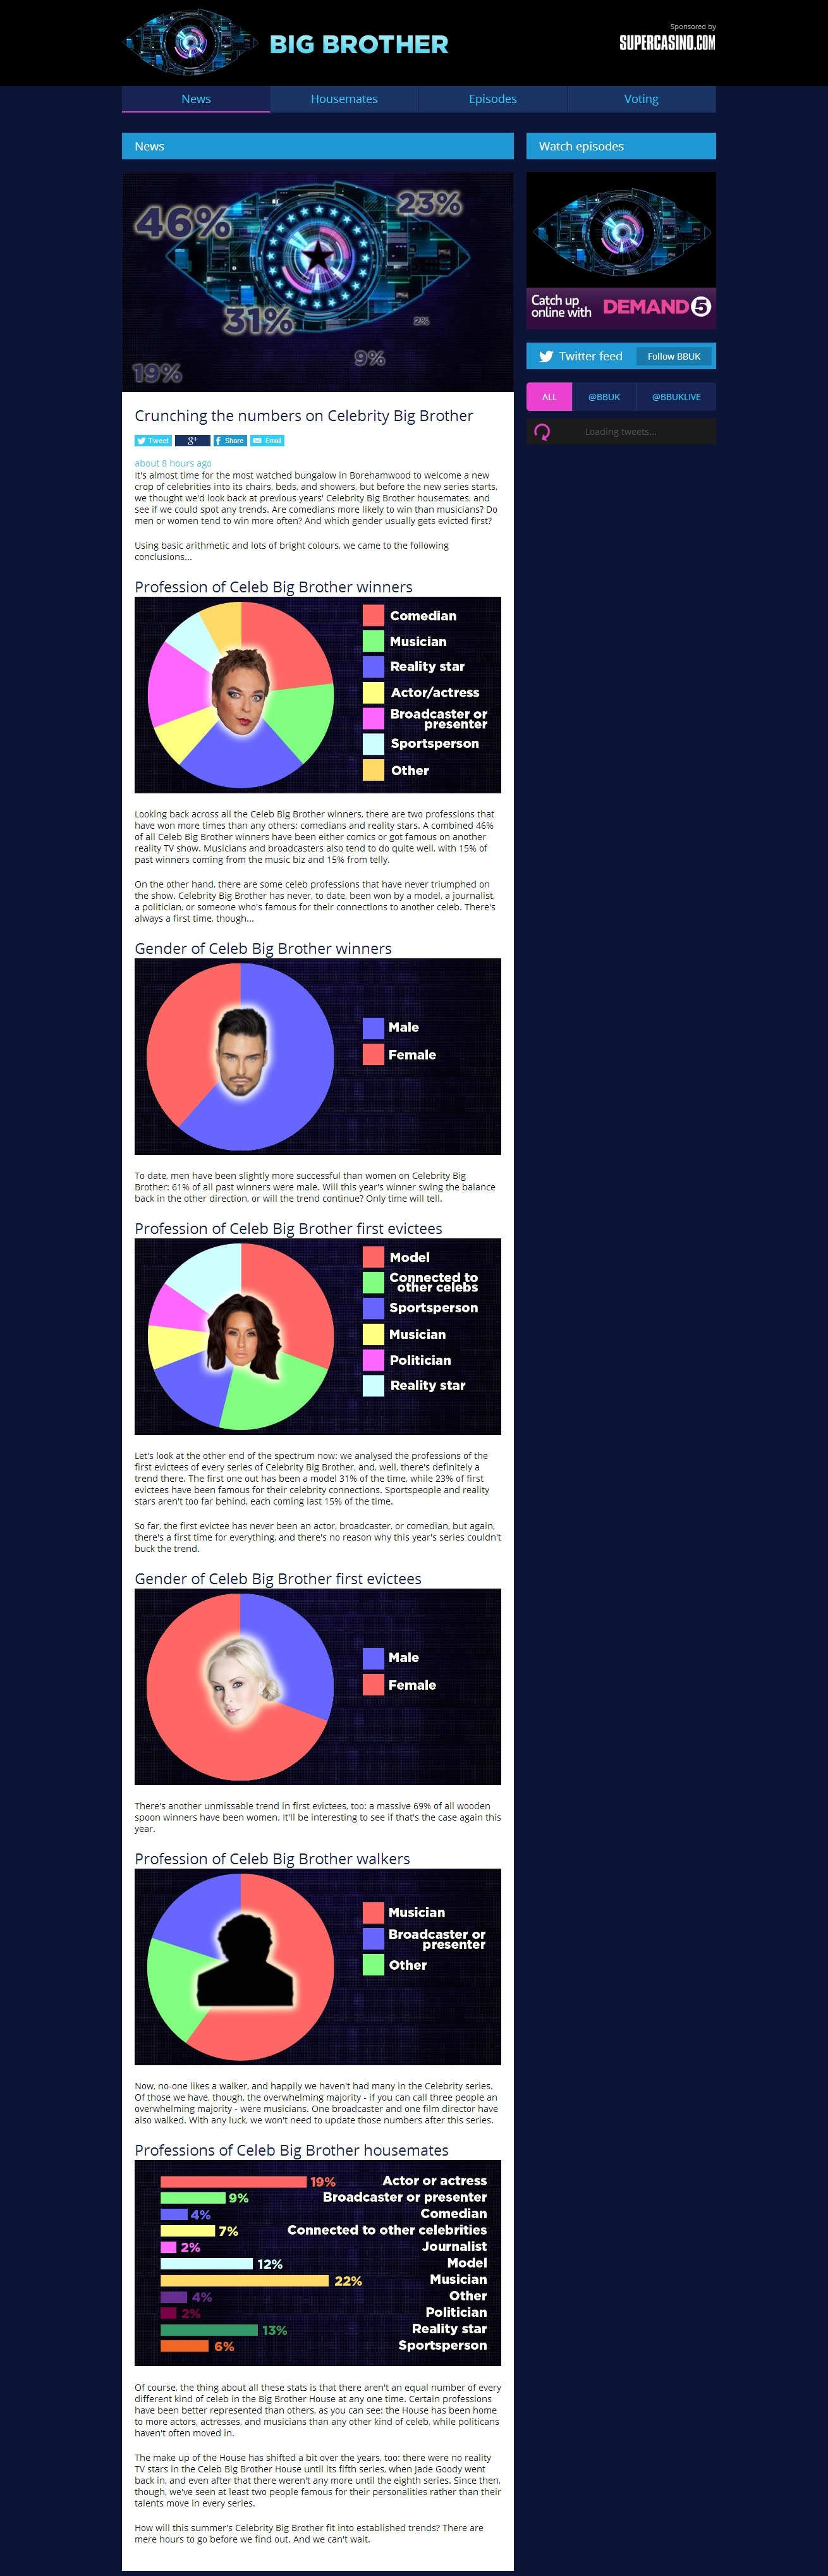 Crunching the numbers on Celebrity Big Brother   Big Brother 2014 (1)